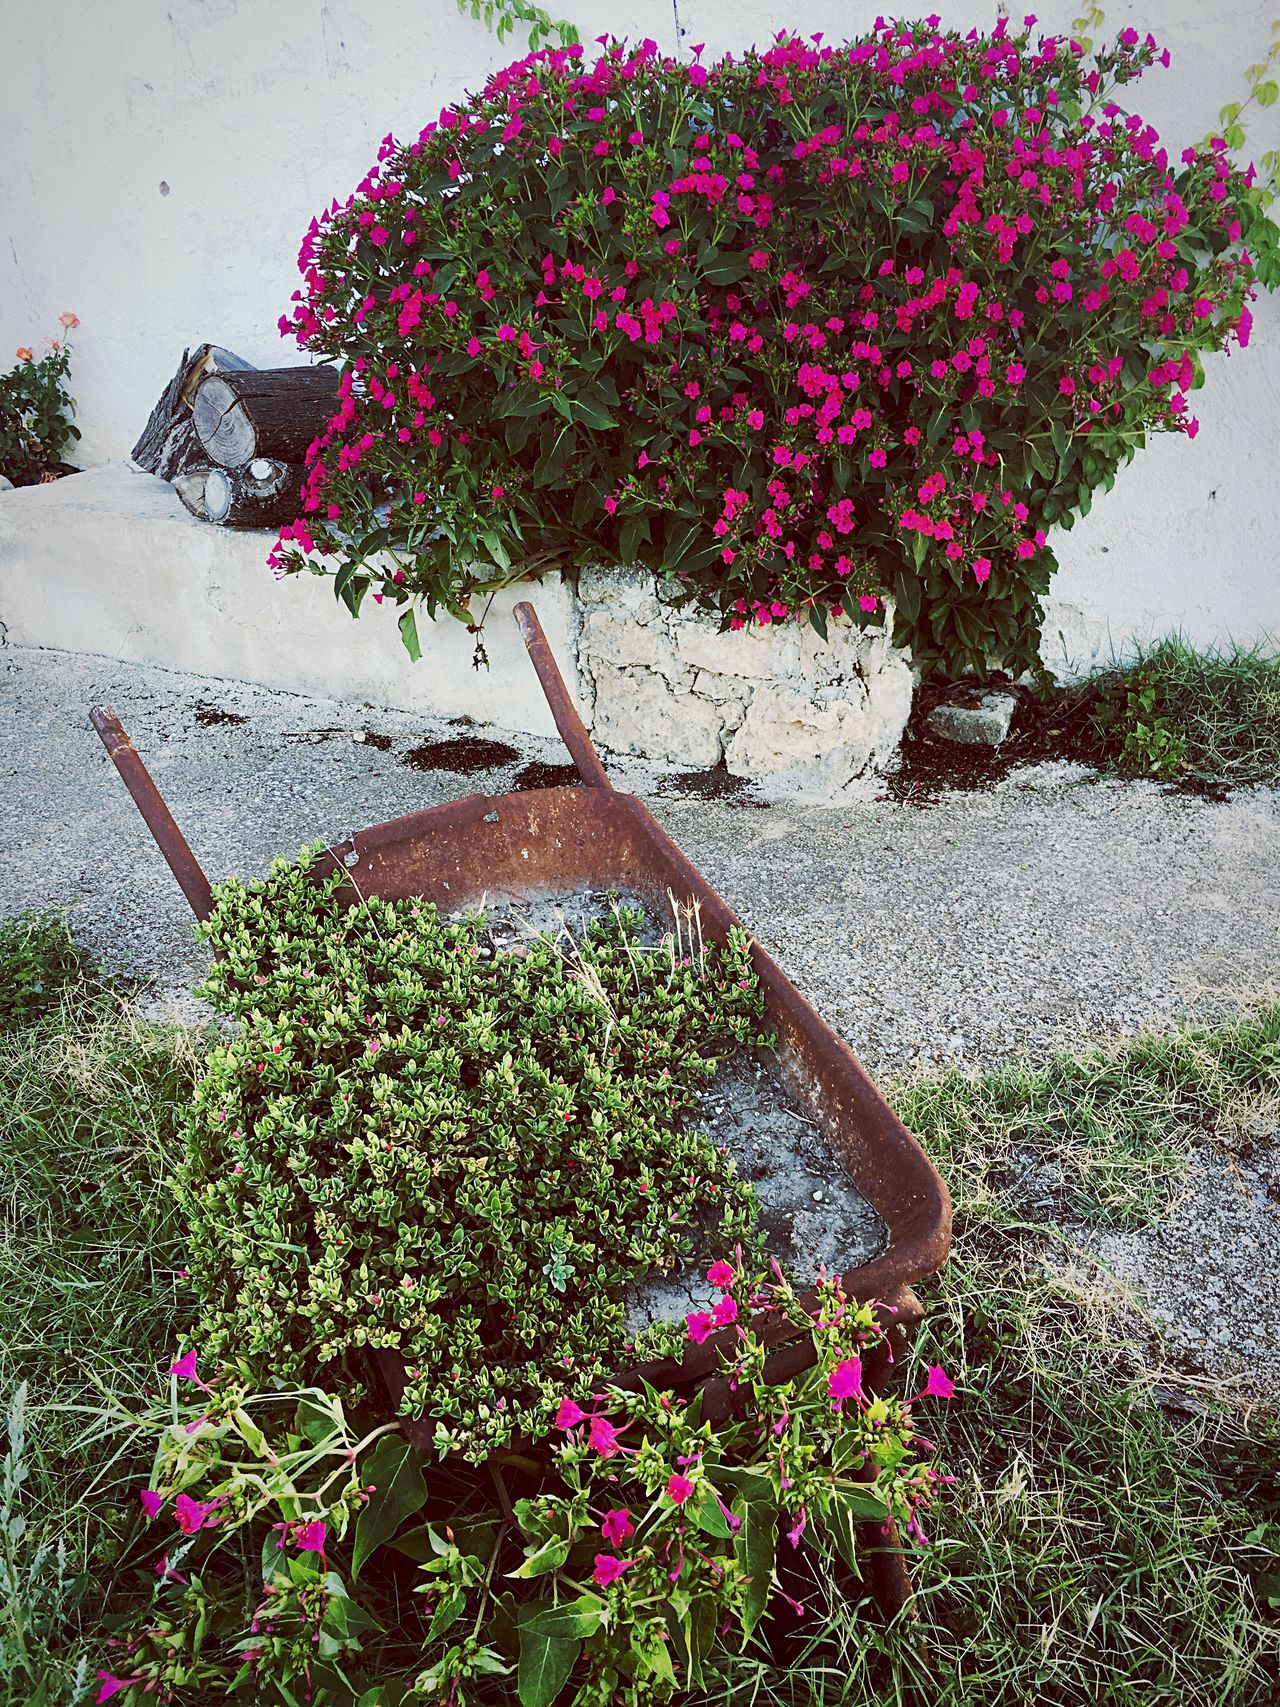 Italy Apúlia Puglia South Italy Countryside Detail Flowers Nature Masseria Agritourism